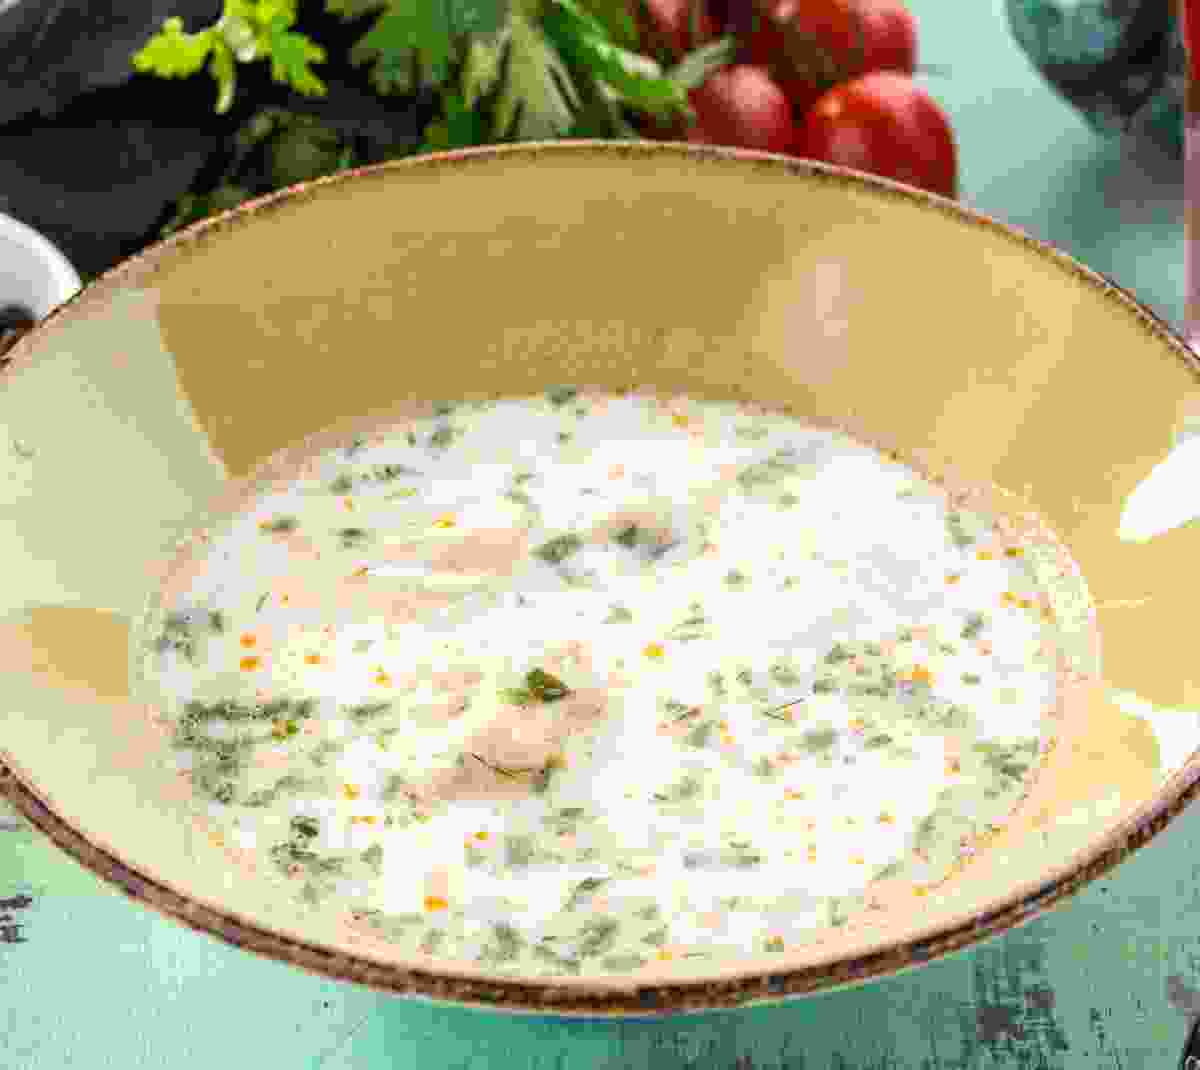 One popular option at the Čardes is white fish soup (Dreamstime)